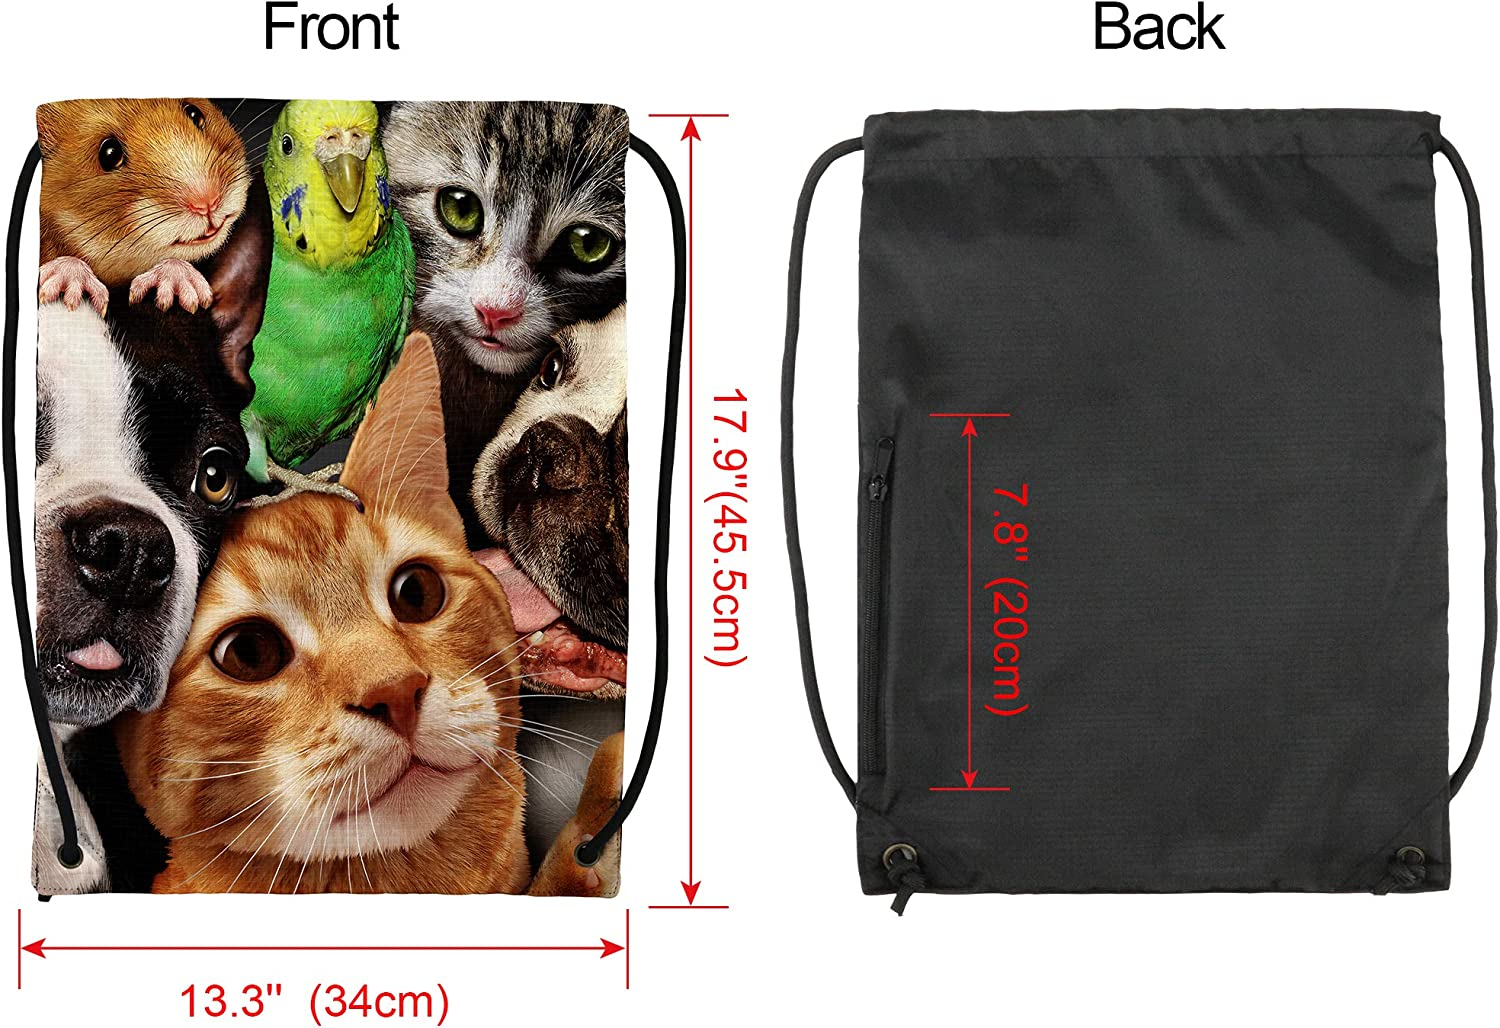 Sackpack with Drawstring Clip String Bag with Side Zipper Pocket Large Size Cinch Bag Machine Washable for Boys Gilrs Teens Cute Cat